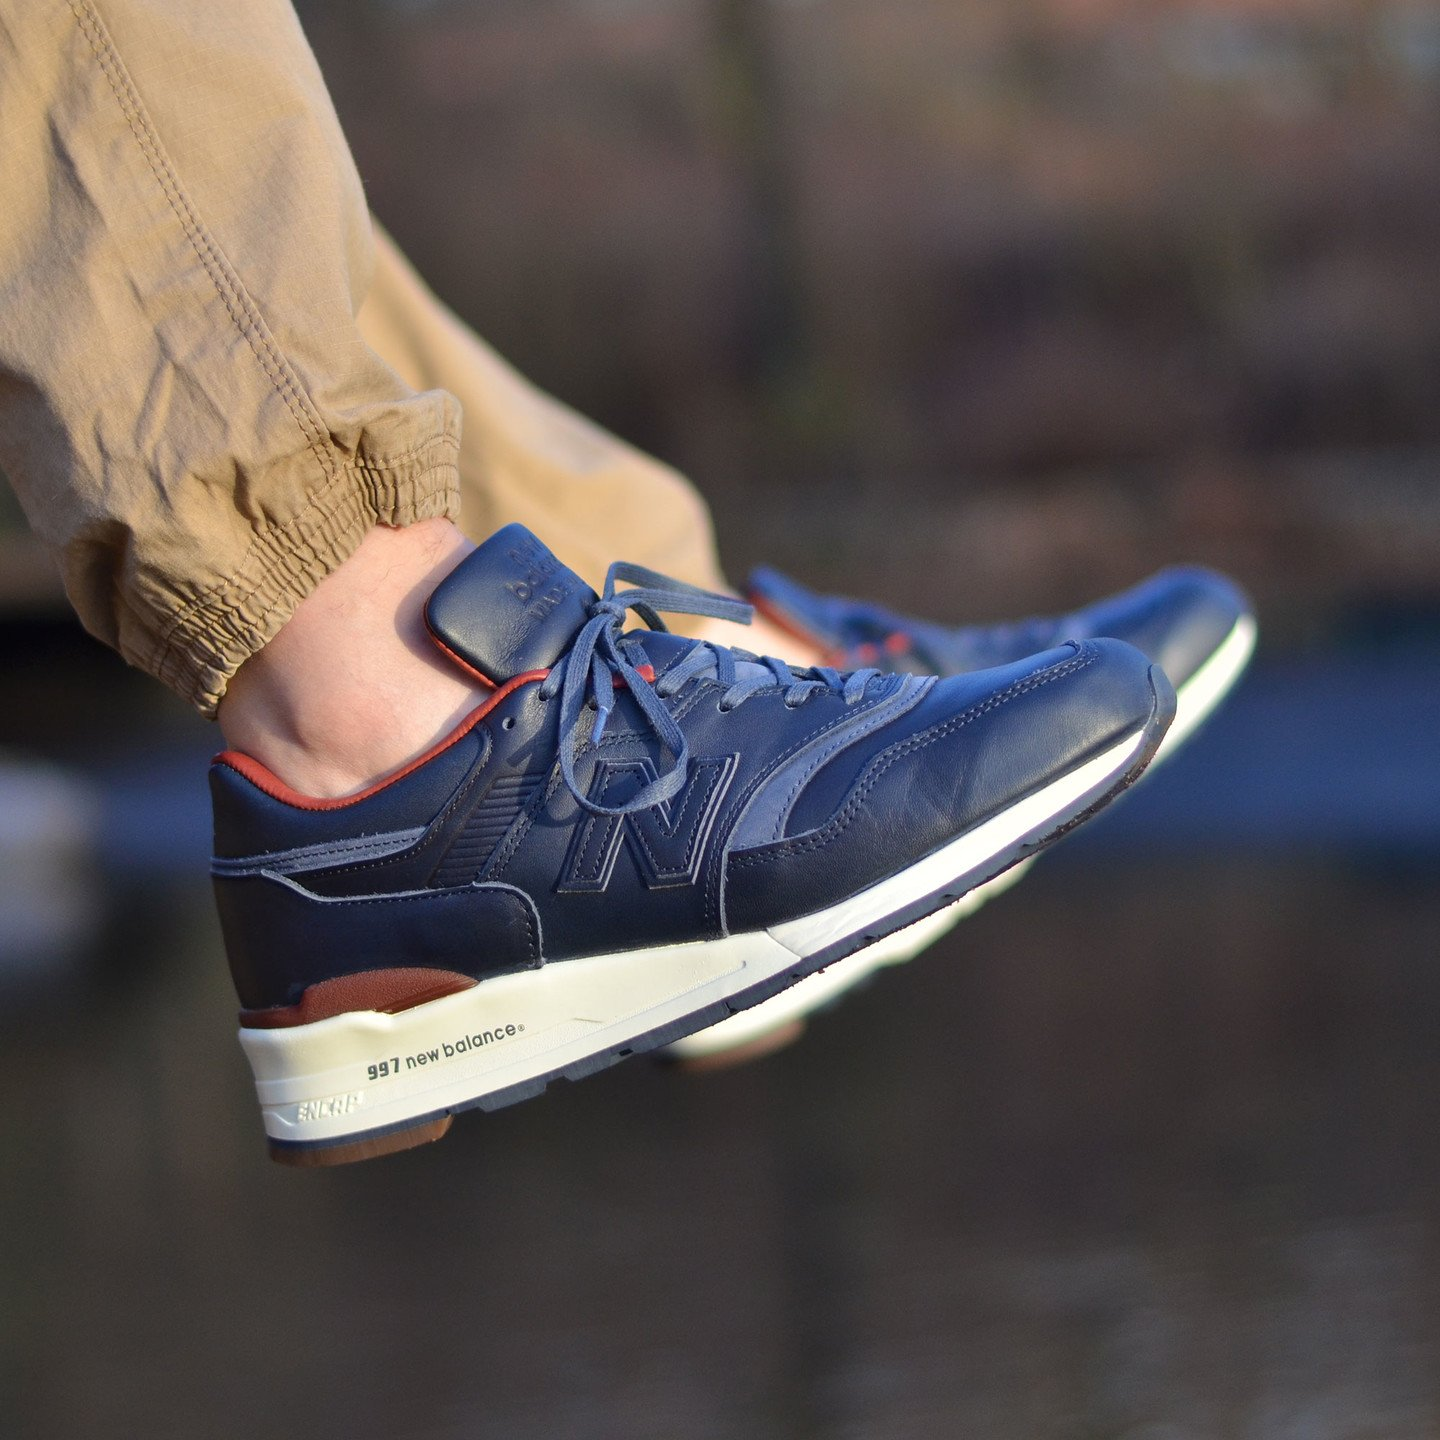 New Balance M997 Made in USA - Horween Leather Dark Blue / Burgundy M997BEXP-43